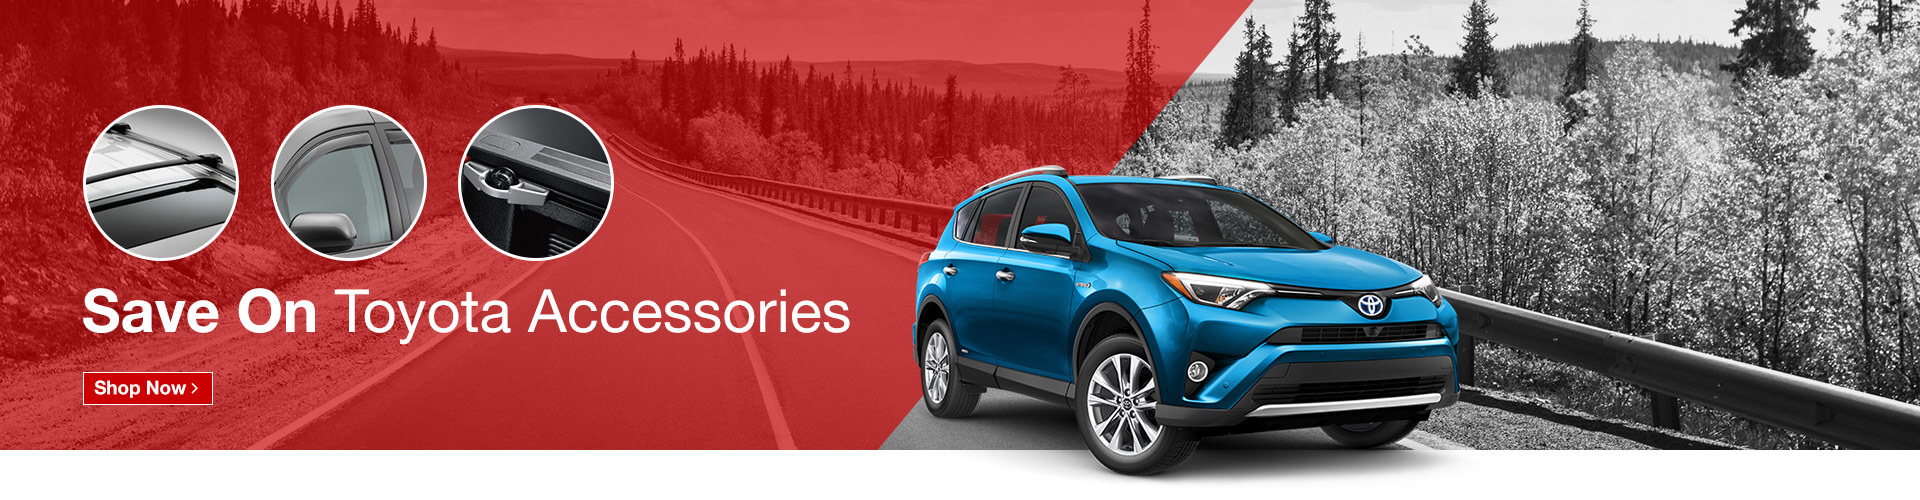 Save on Toyota Accessories